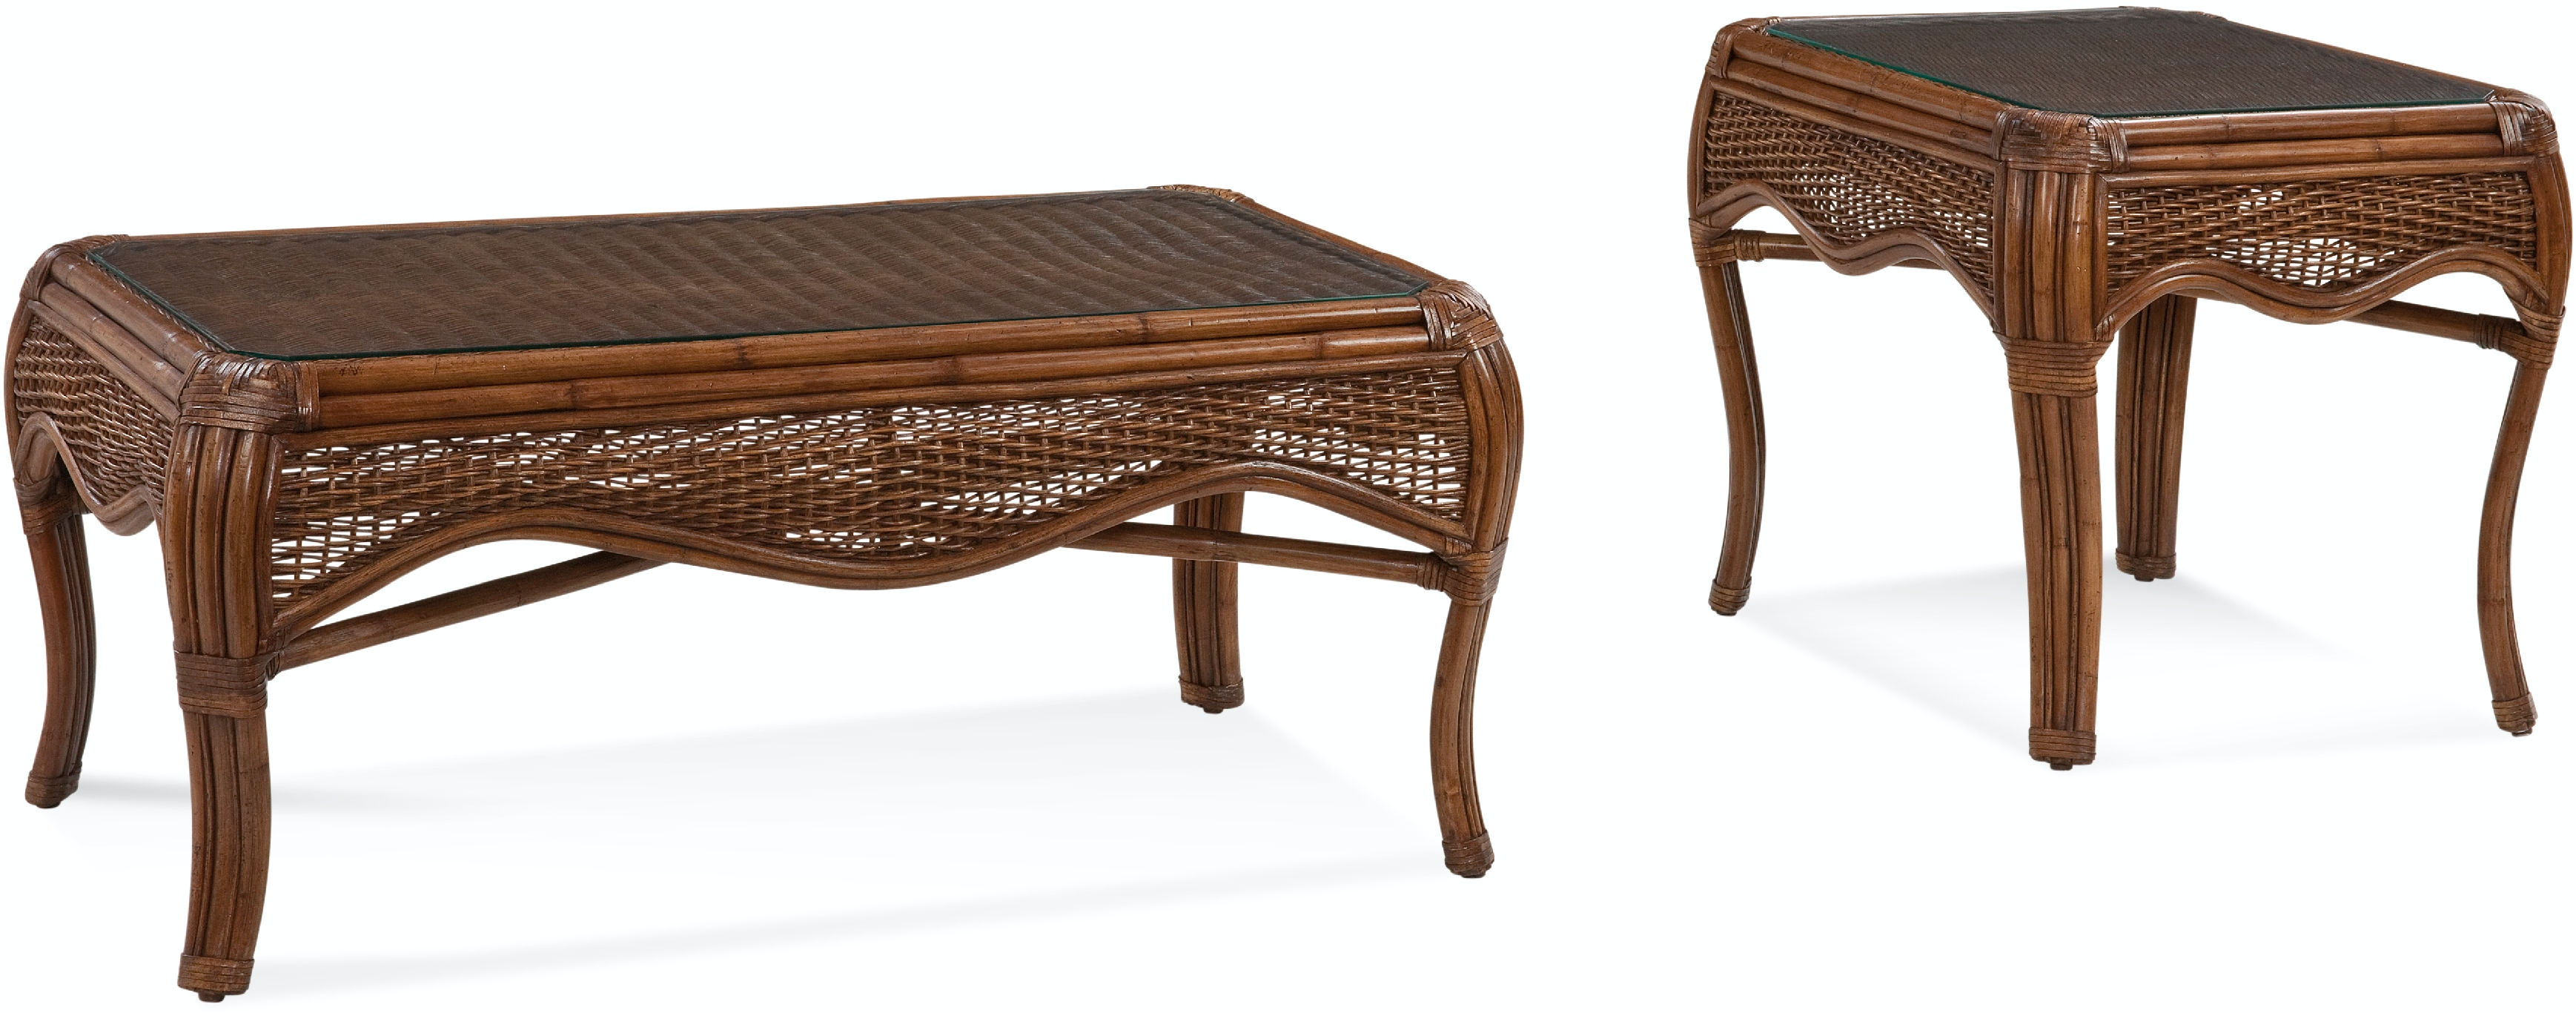 Braxton Culler Outdoorpatio Cocktail Table 210 072